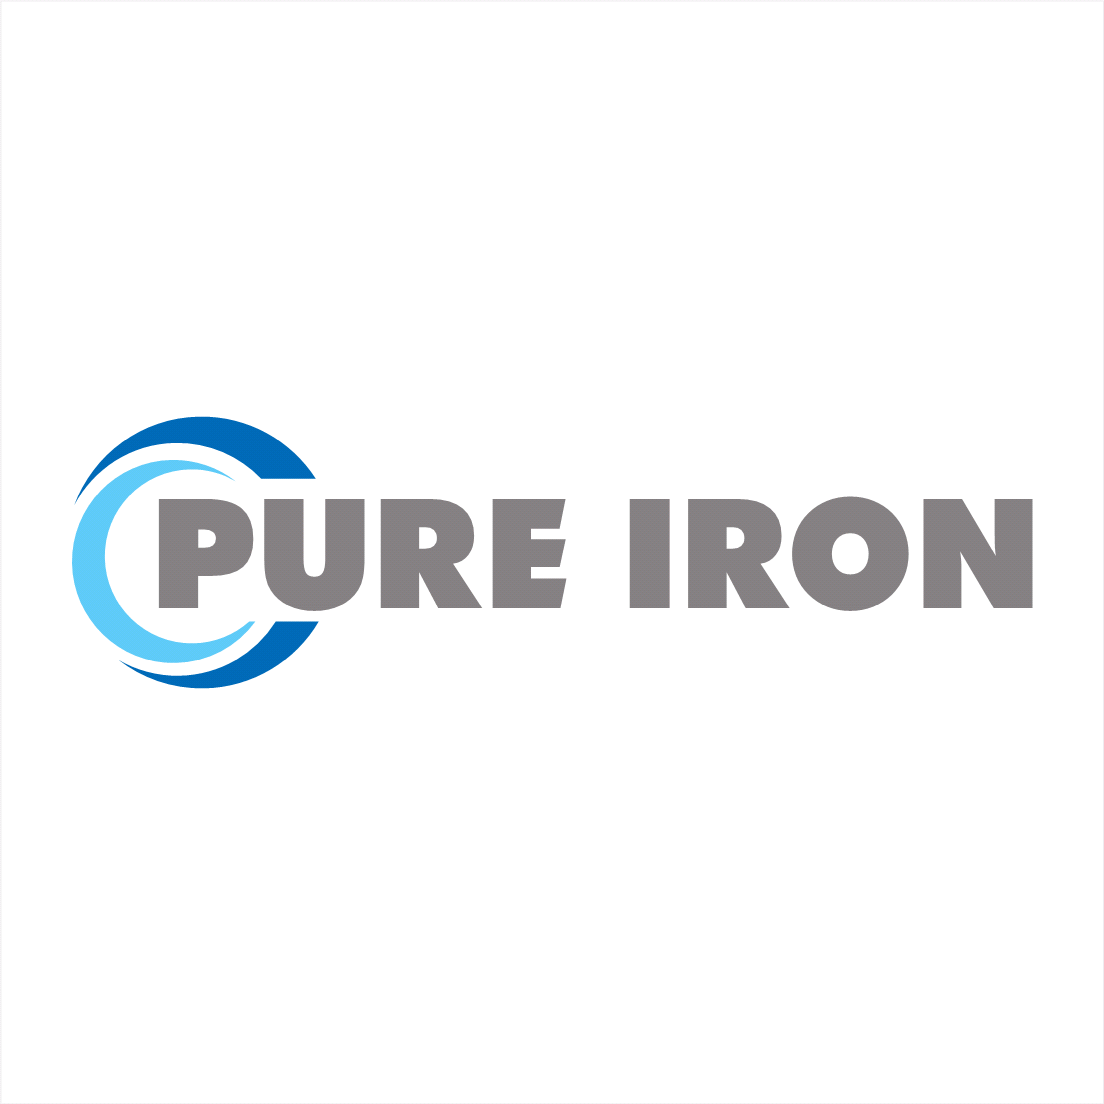 Logo Design by oldpapa - Entry No. 167 in the Logo Design Contest Fun Logo Design for Pure Iron.